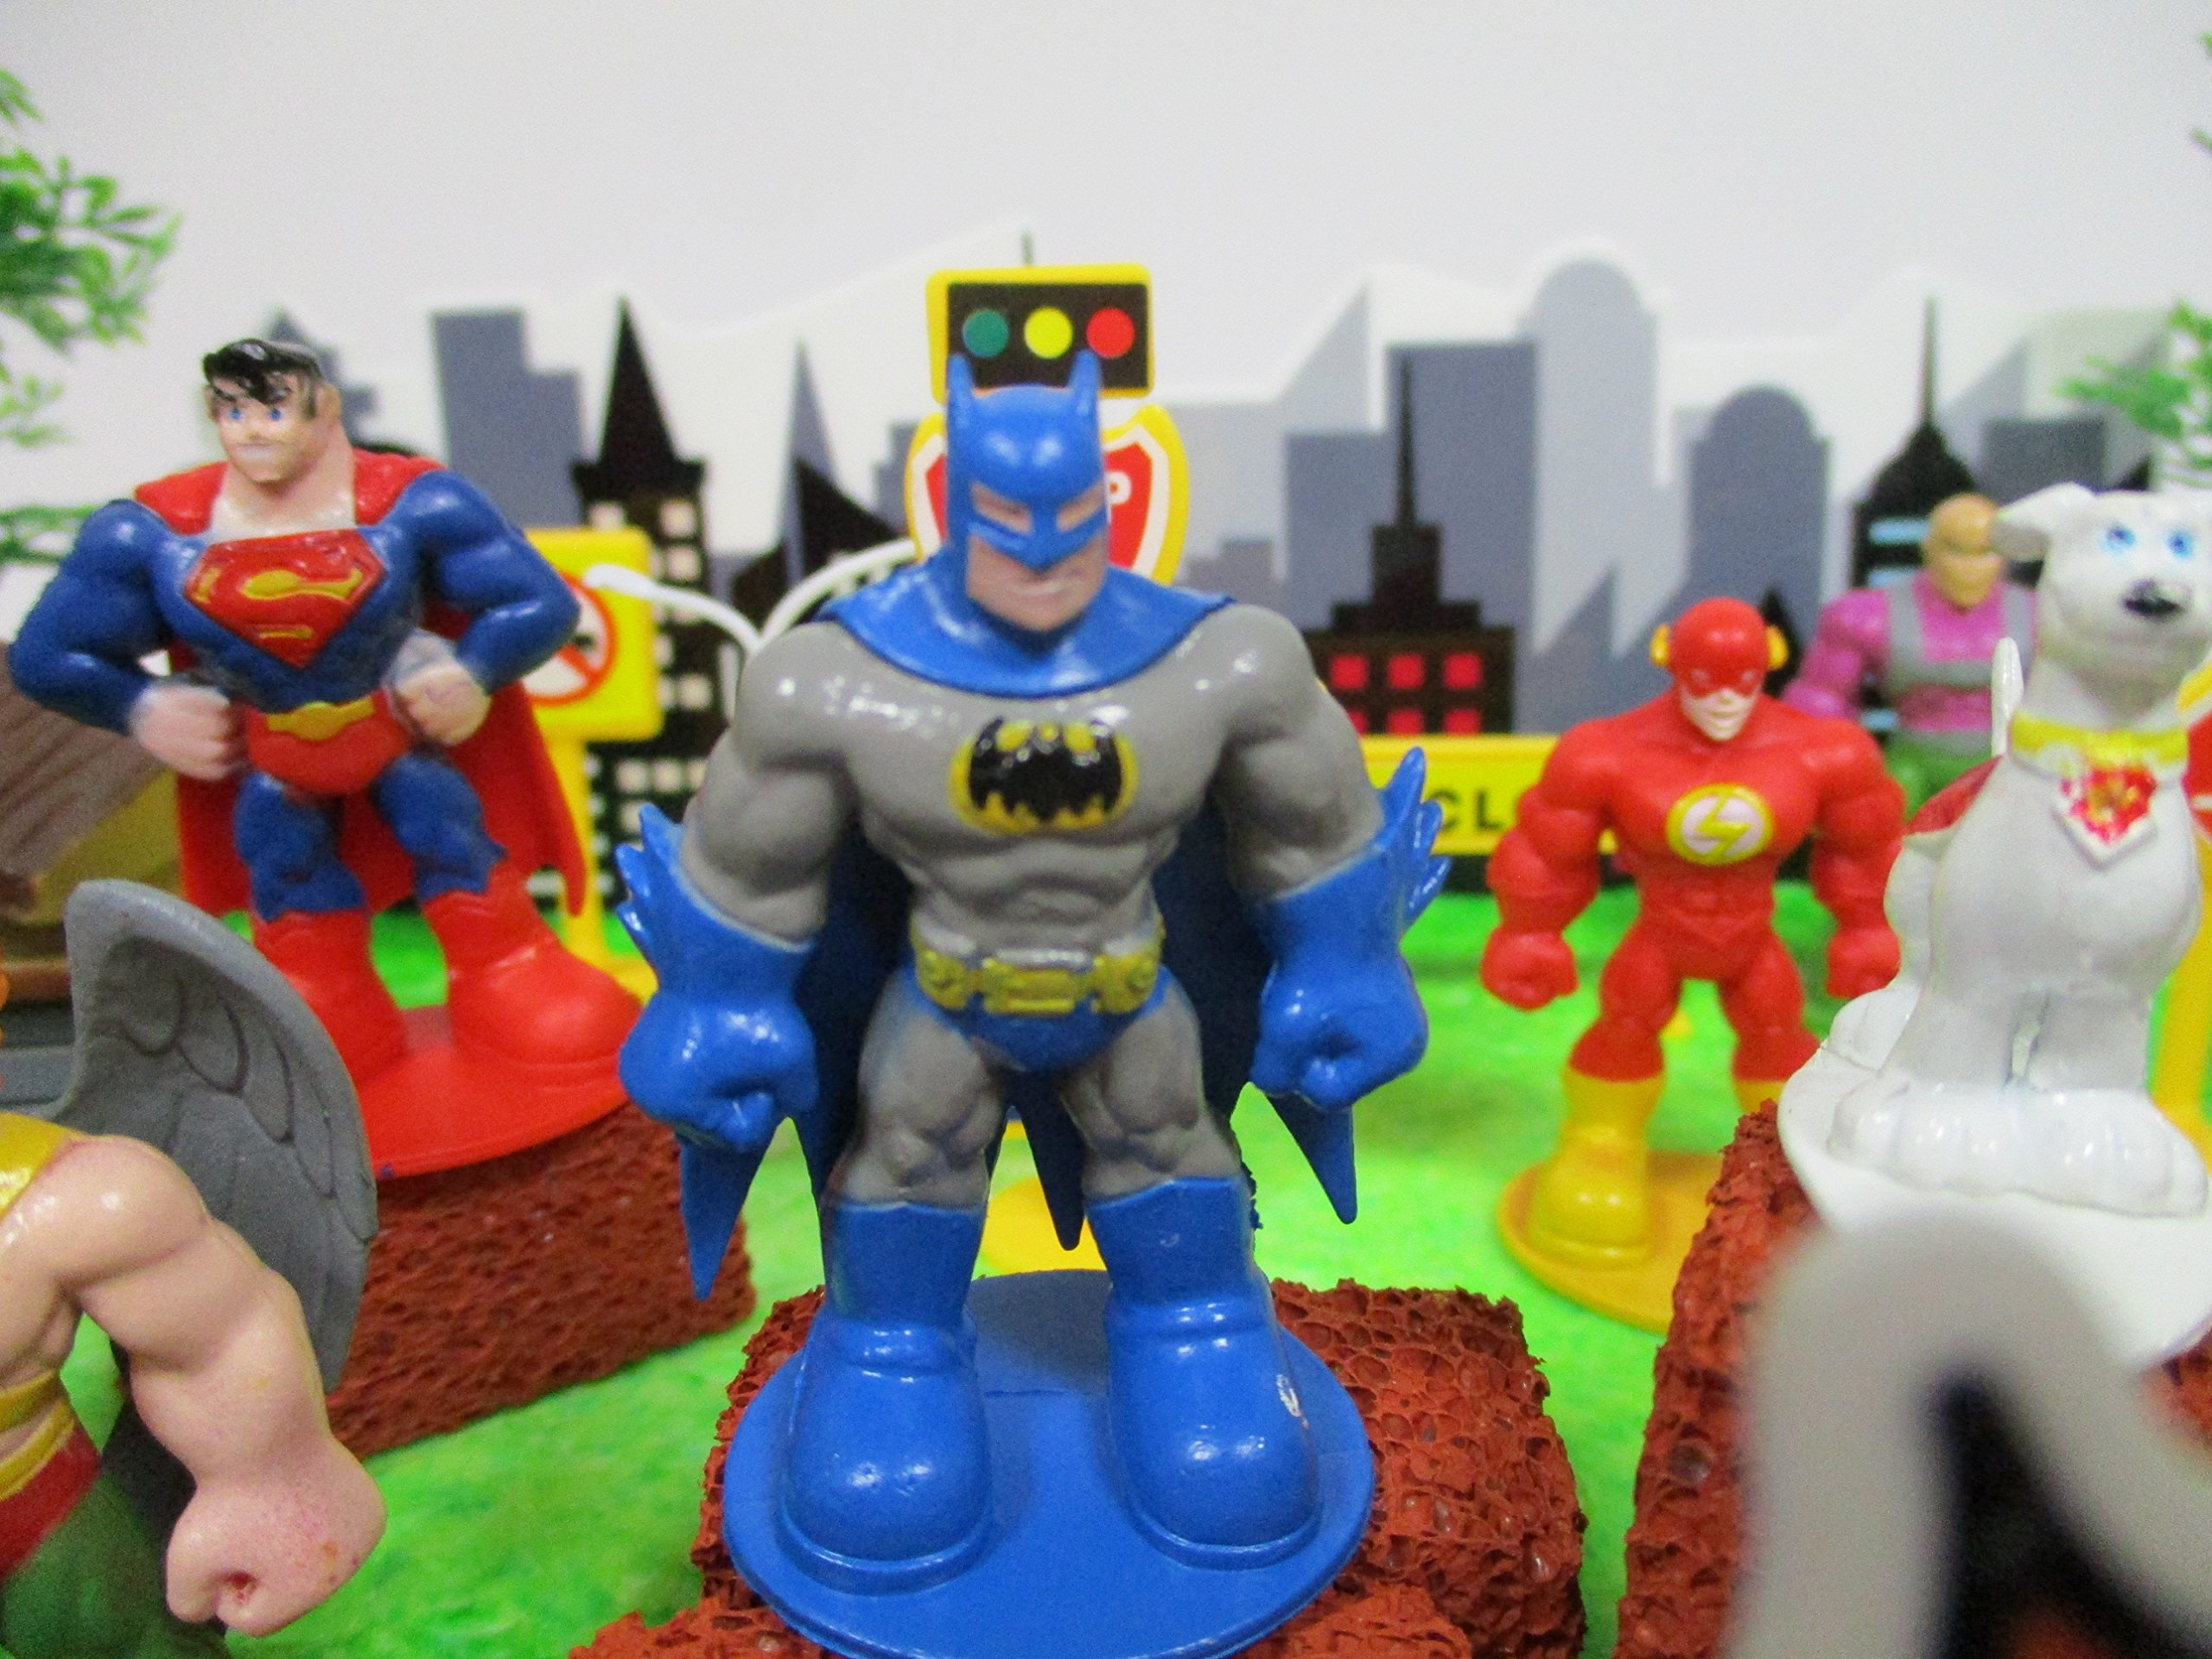 DC Comic Super Friends Birthday Cake Topper Set Featuring Super Hero Crime Fighters and Villains with Decorative Accessories by Kitoo (Image #8)